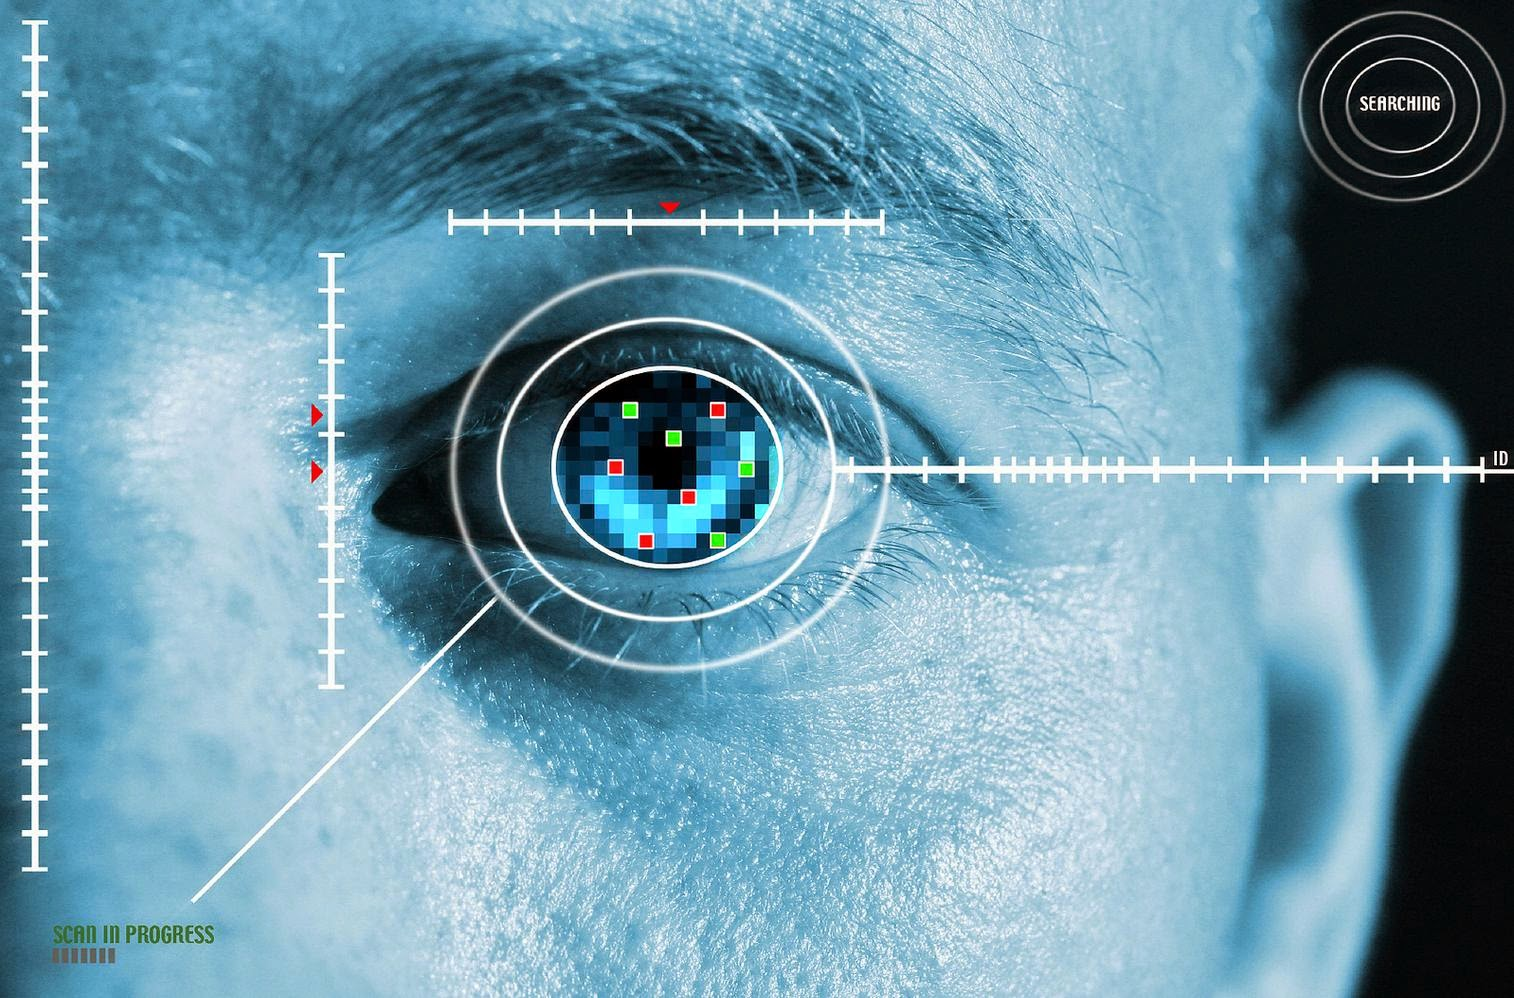 Karsof Systems biometric security